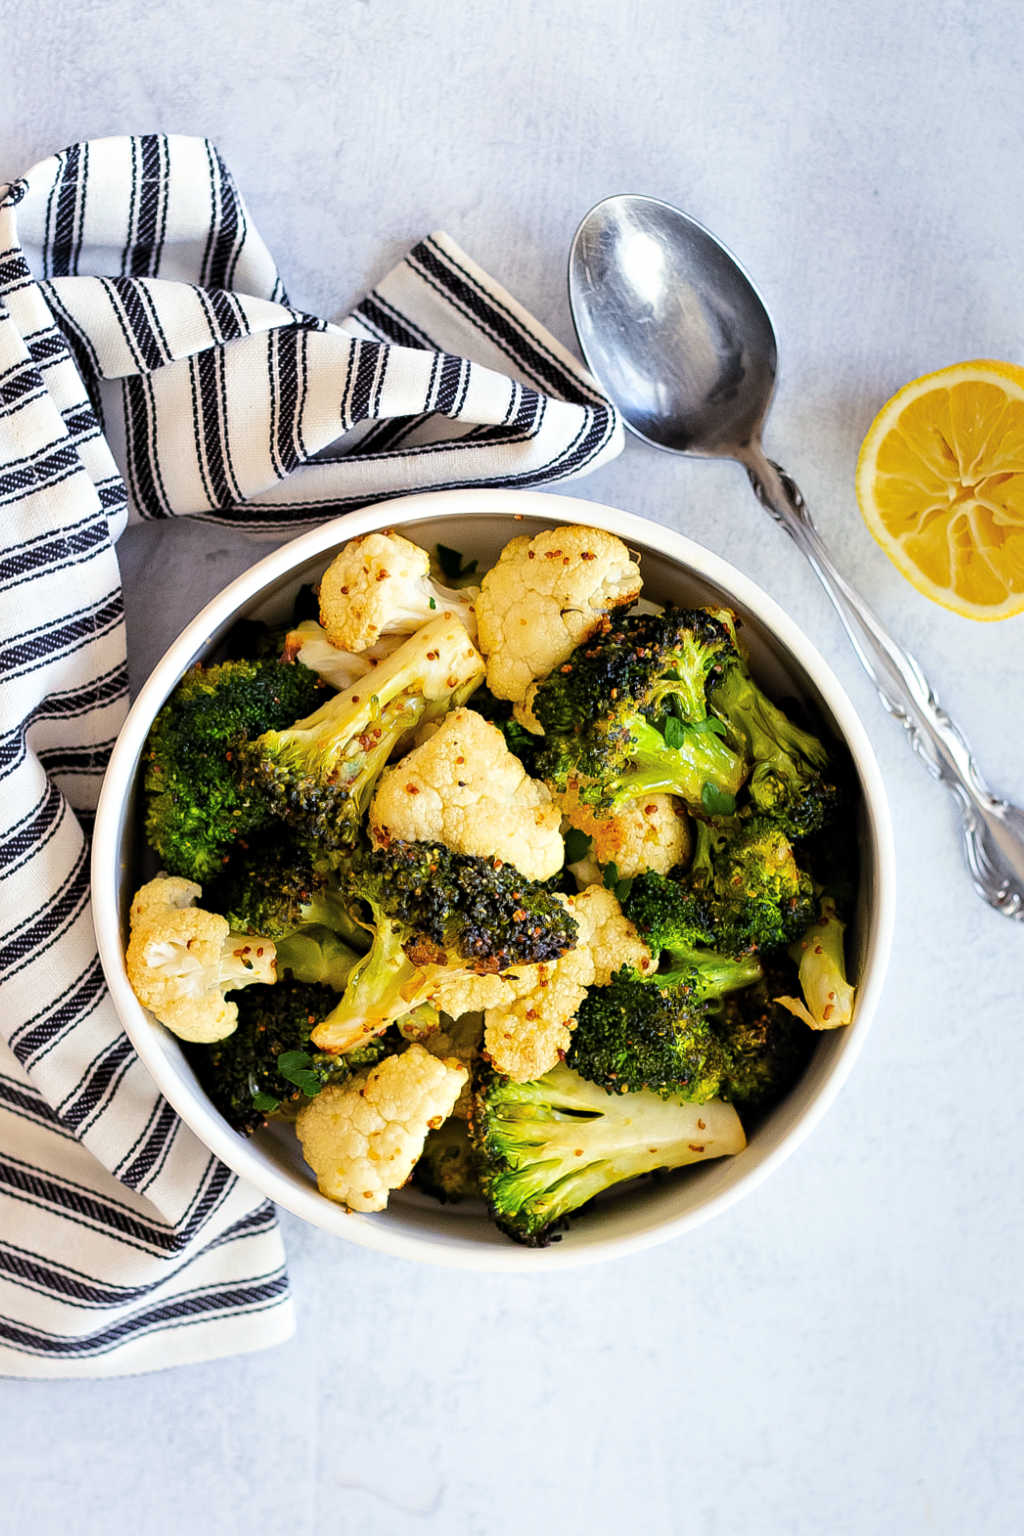 roasted broccoli and cauliflower in a white bowl on a table